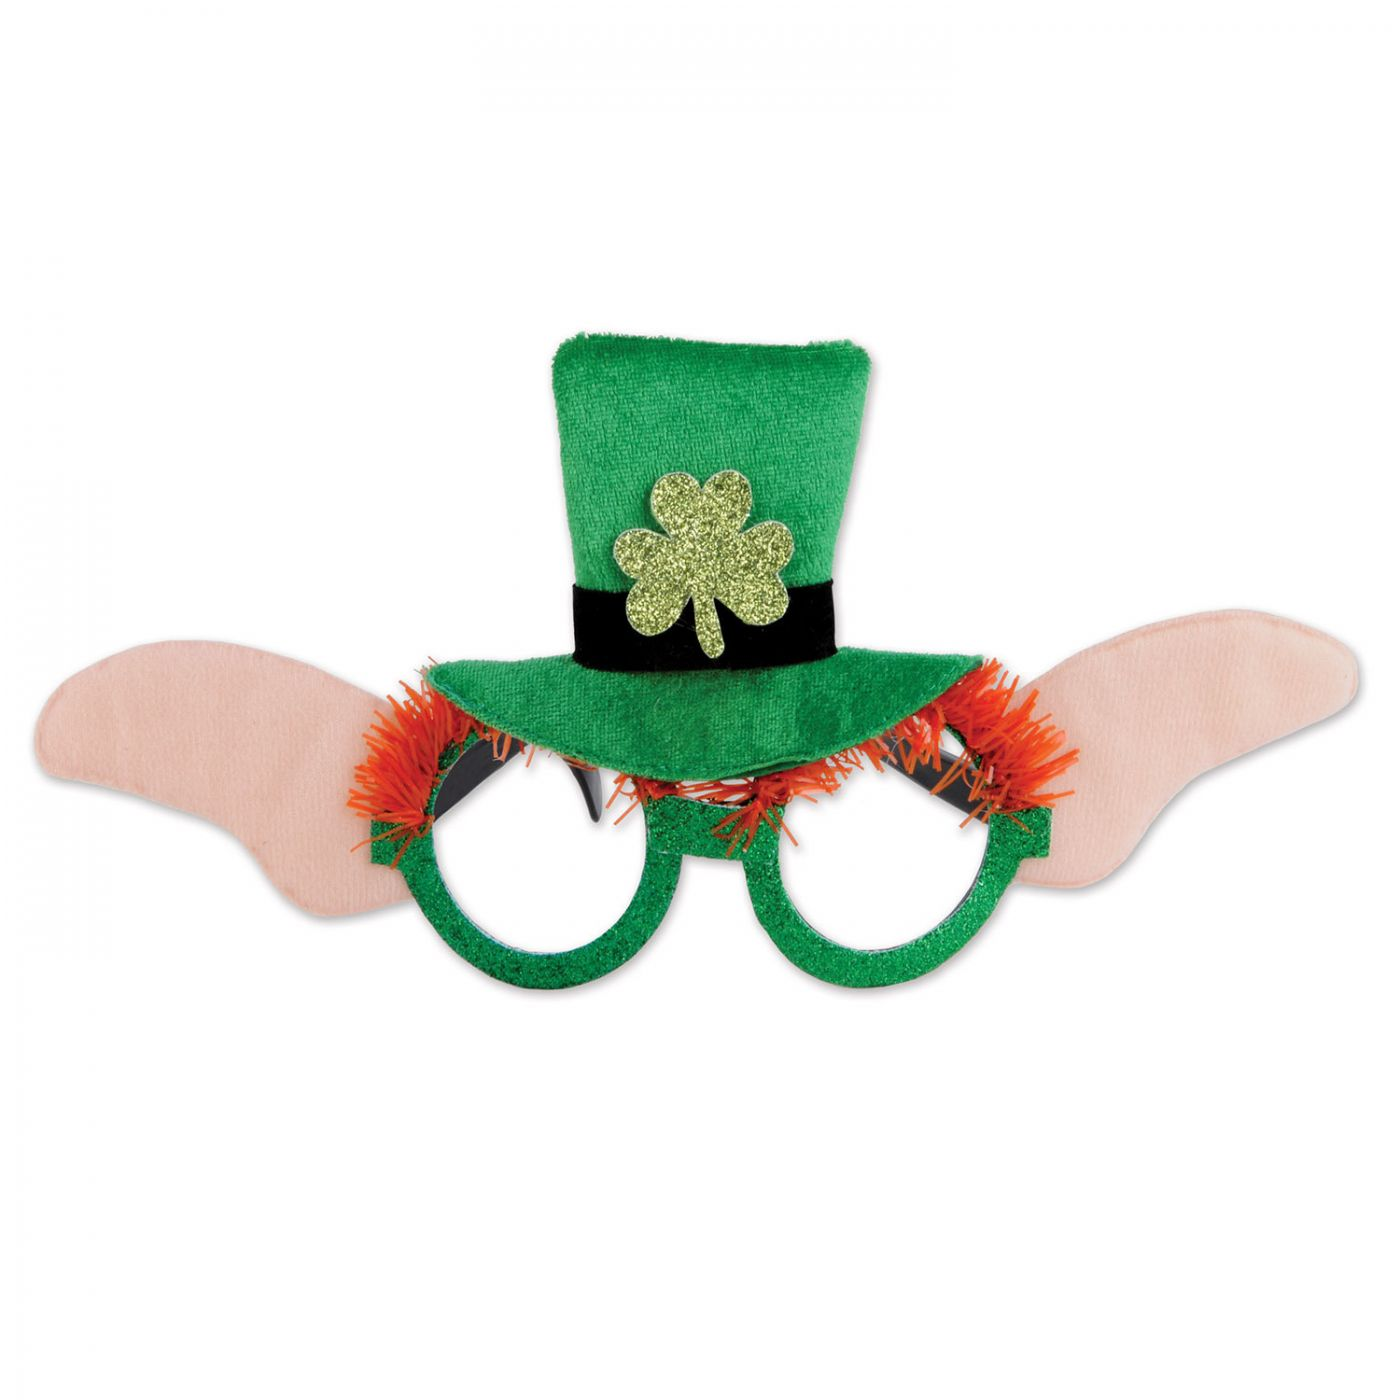 Leprechaun Glasses image